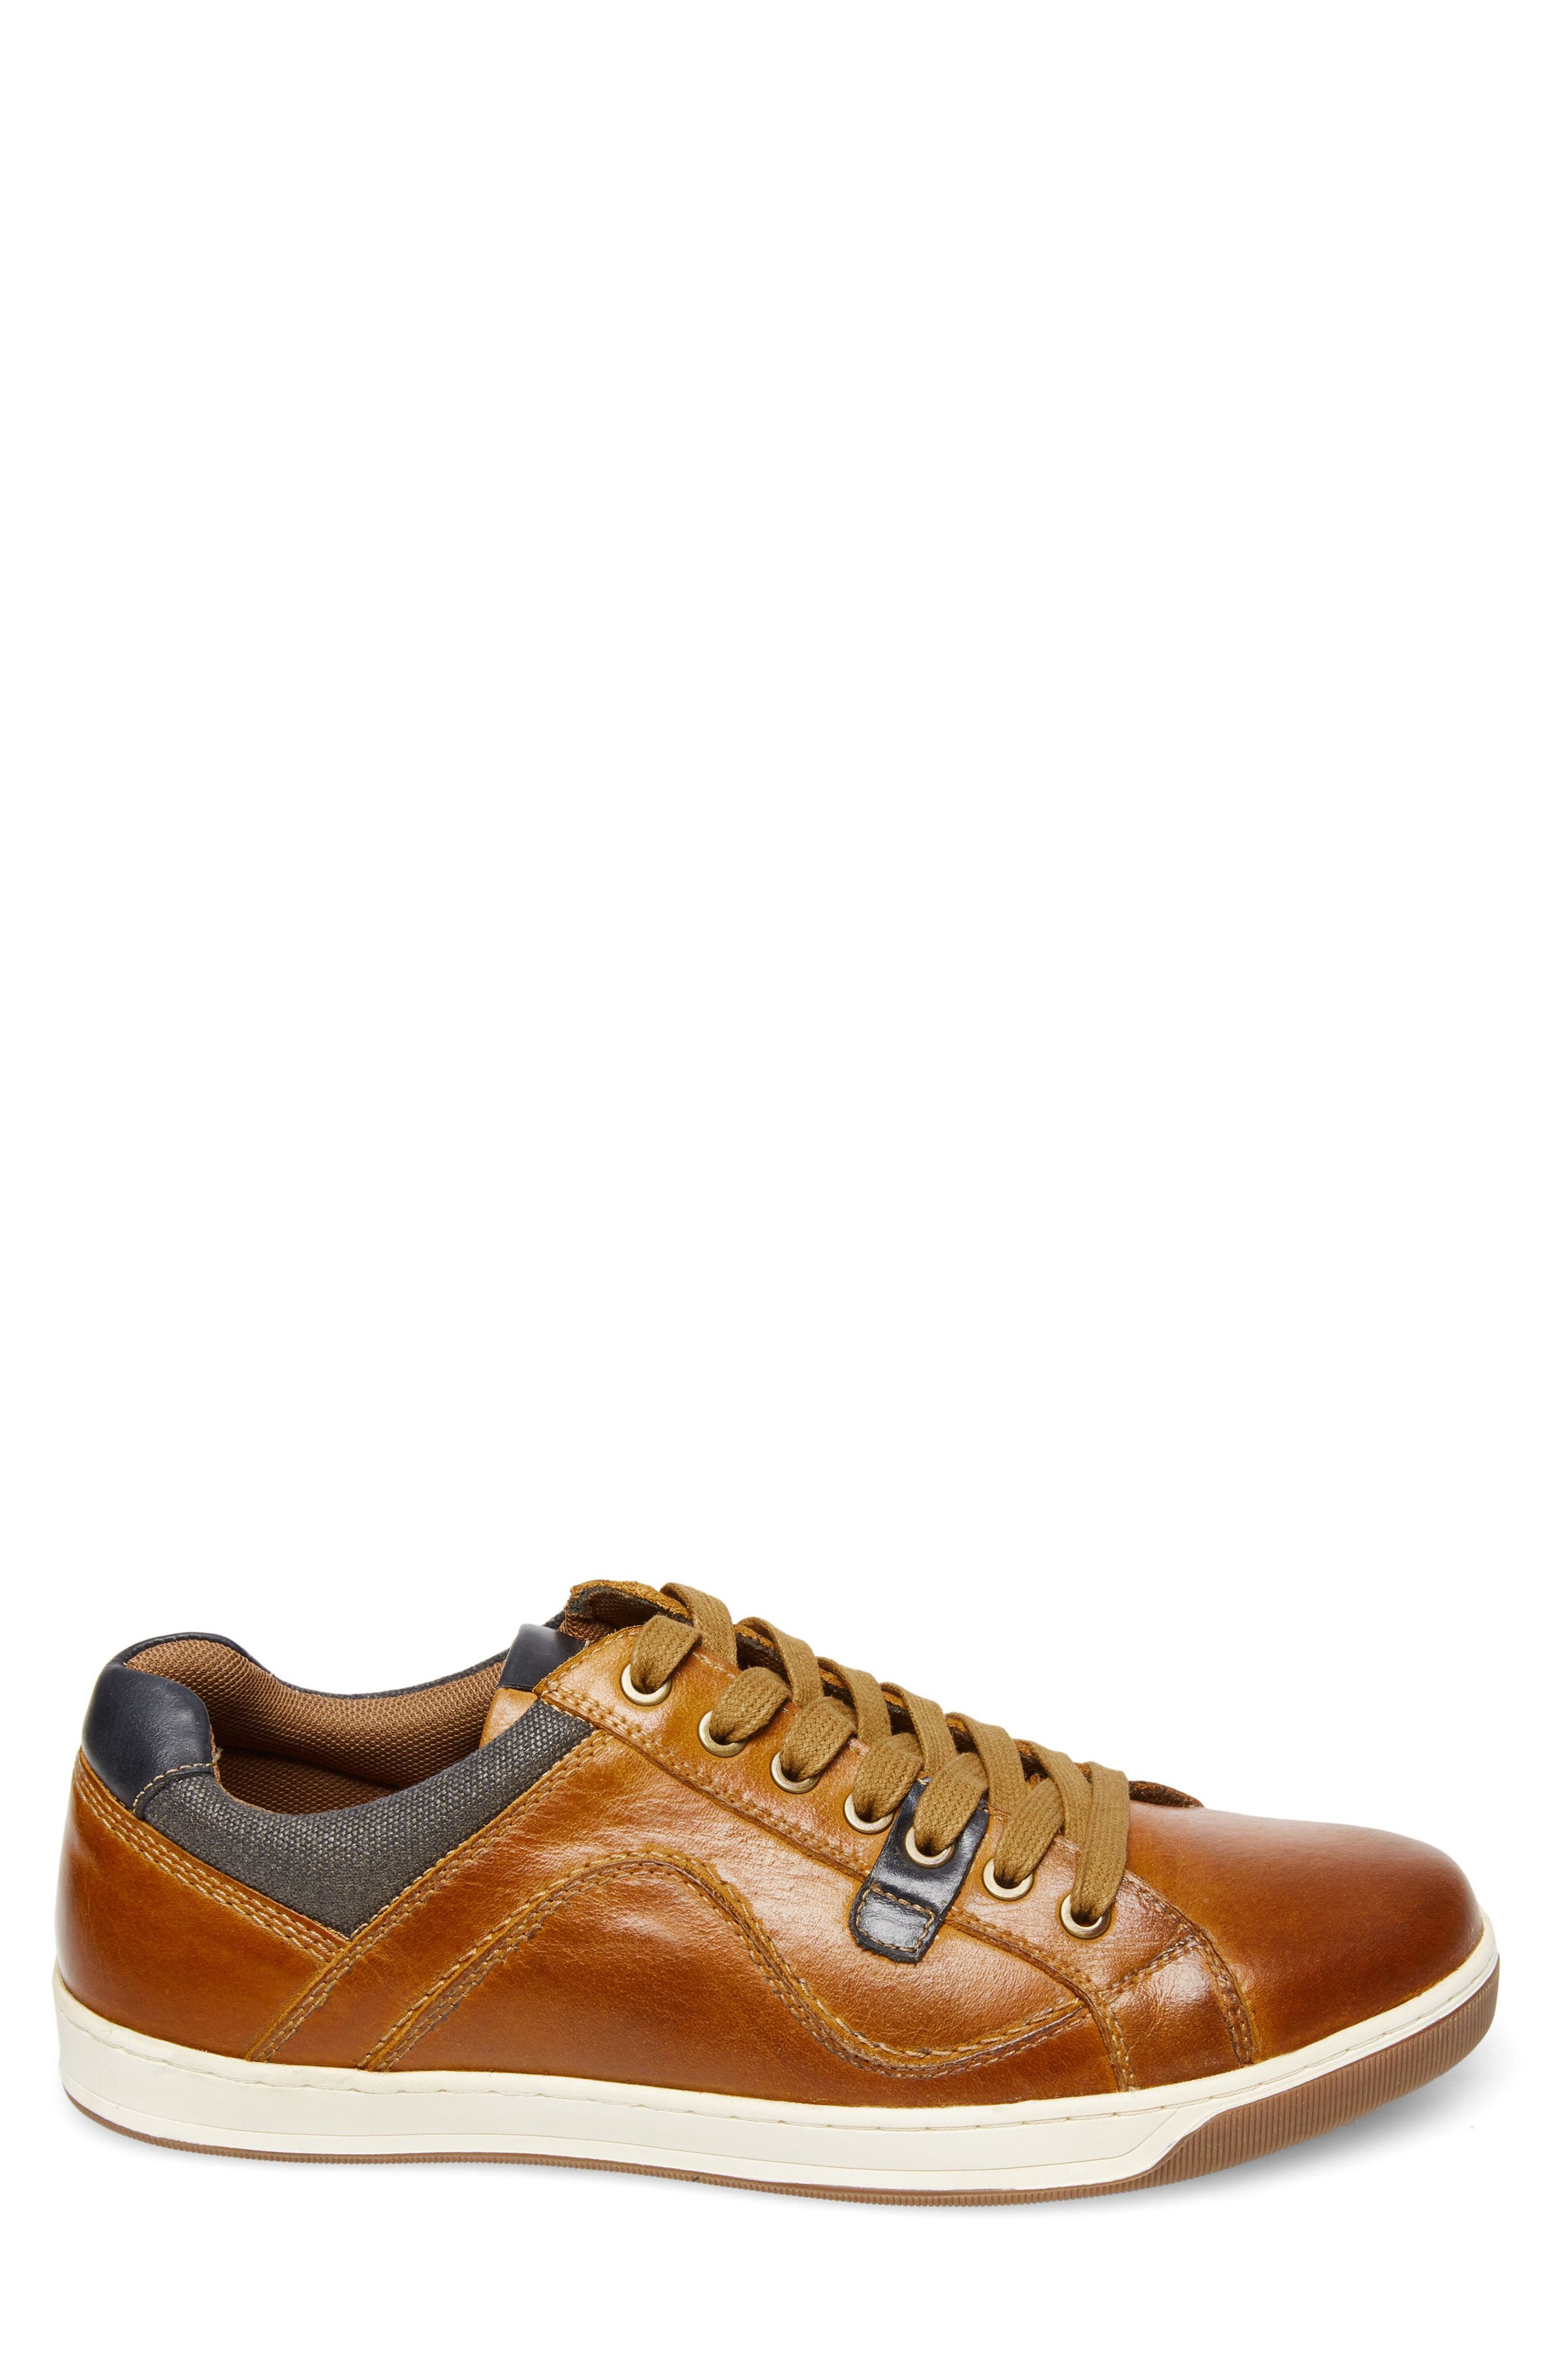 Chater Low Top Sneaker,                             Alternate thumbnail 3, color,                             RUST LEATHER